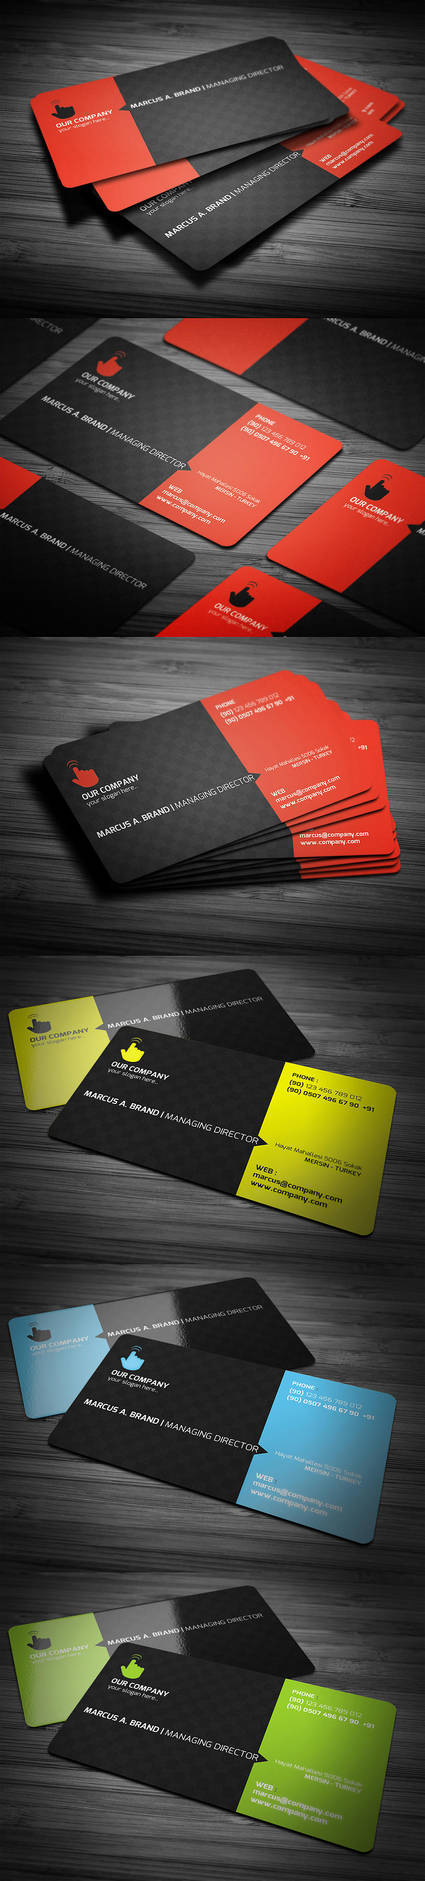 Rounded Corner Business Card by calwincalwin